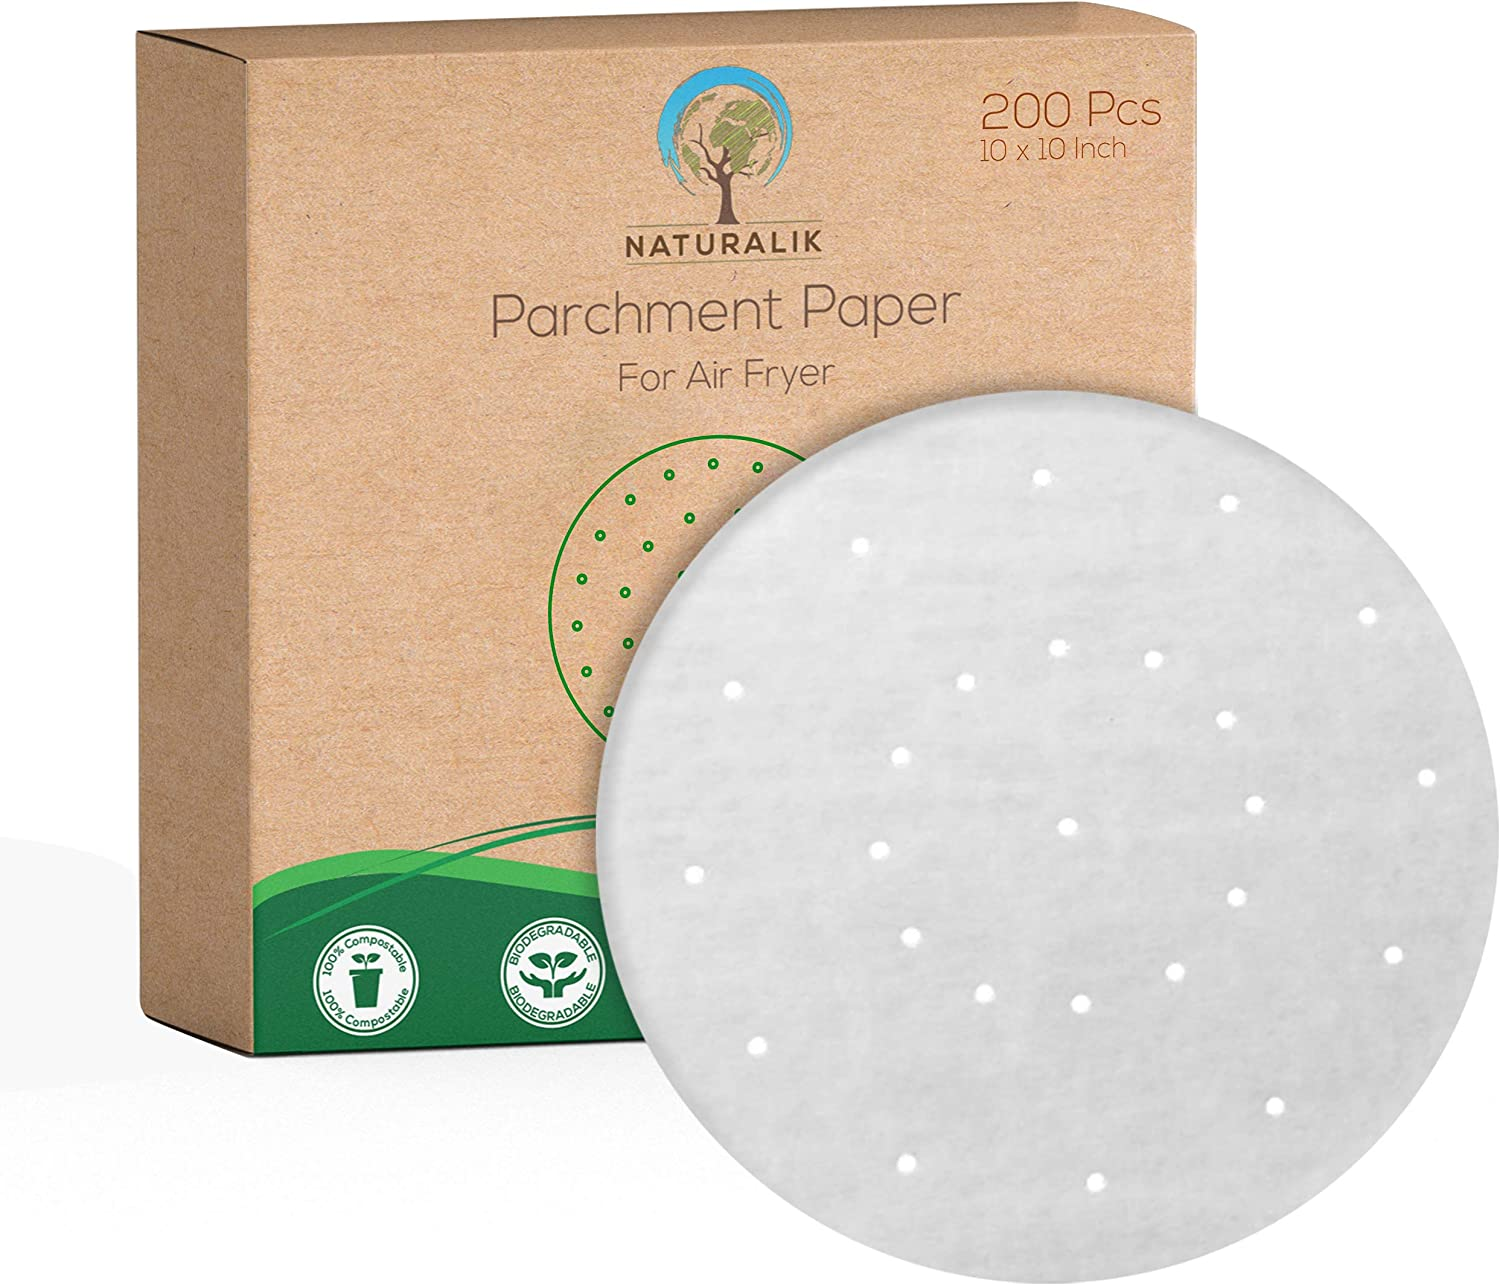 Naturalik 200pcs parchment paper 10 inch | bamboo steamer 10 inch | parchment paper for baking | air fryer parchment paper | perforated parchment paper for air fryer | Non-Stick 10'' round